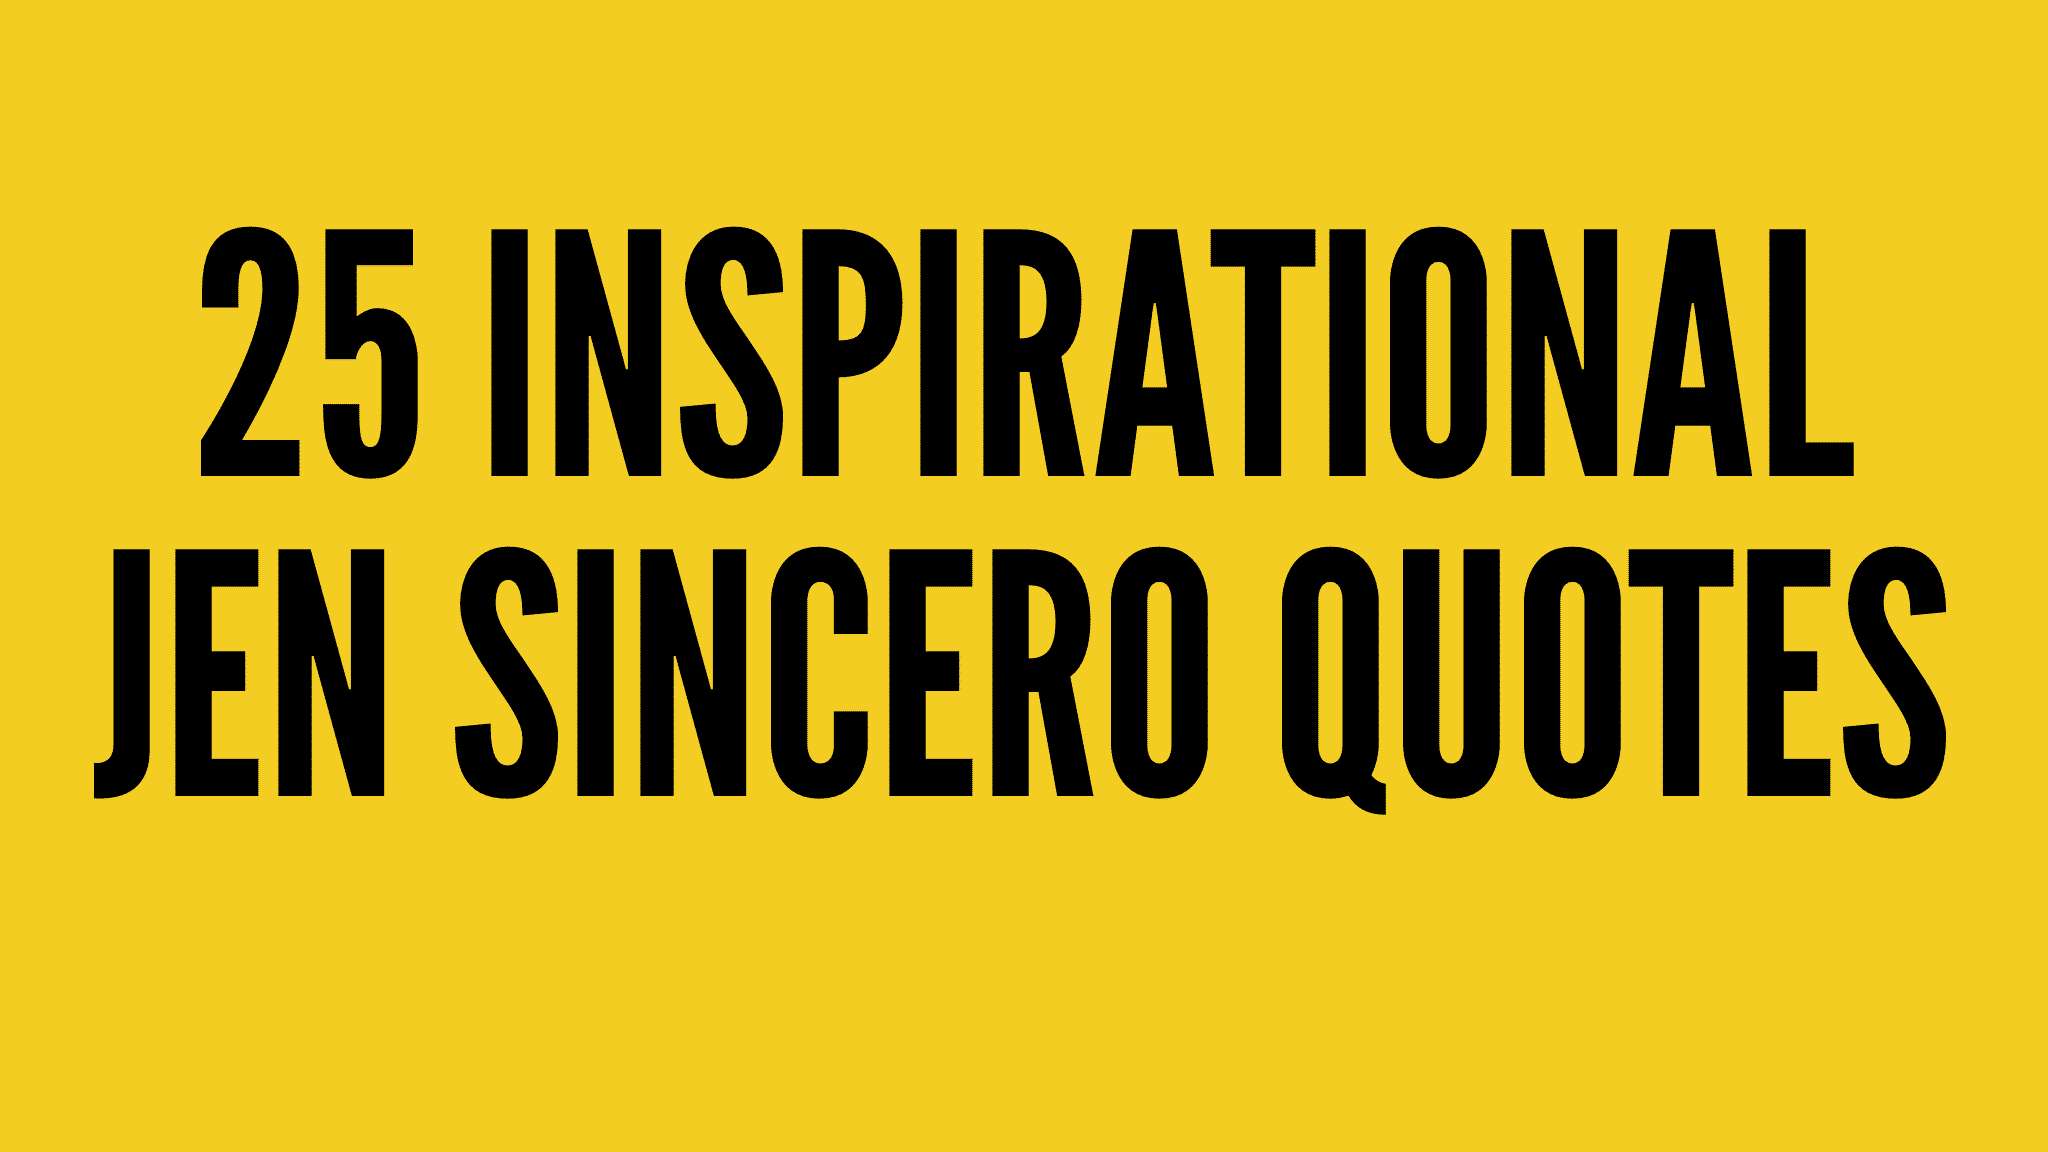 25 Inspirational Jen Sincero Quotes